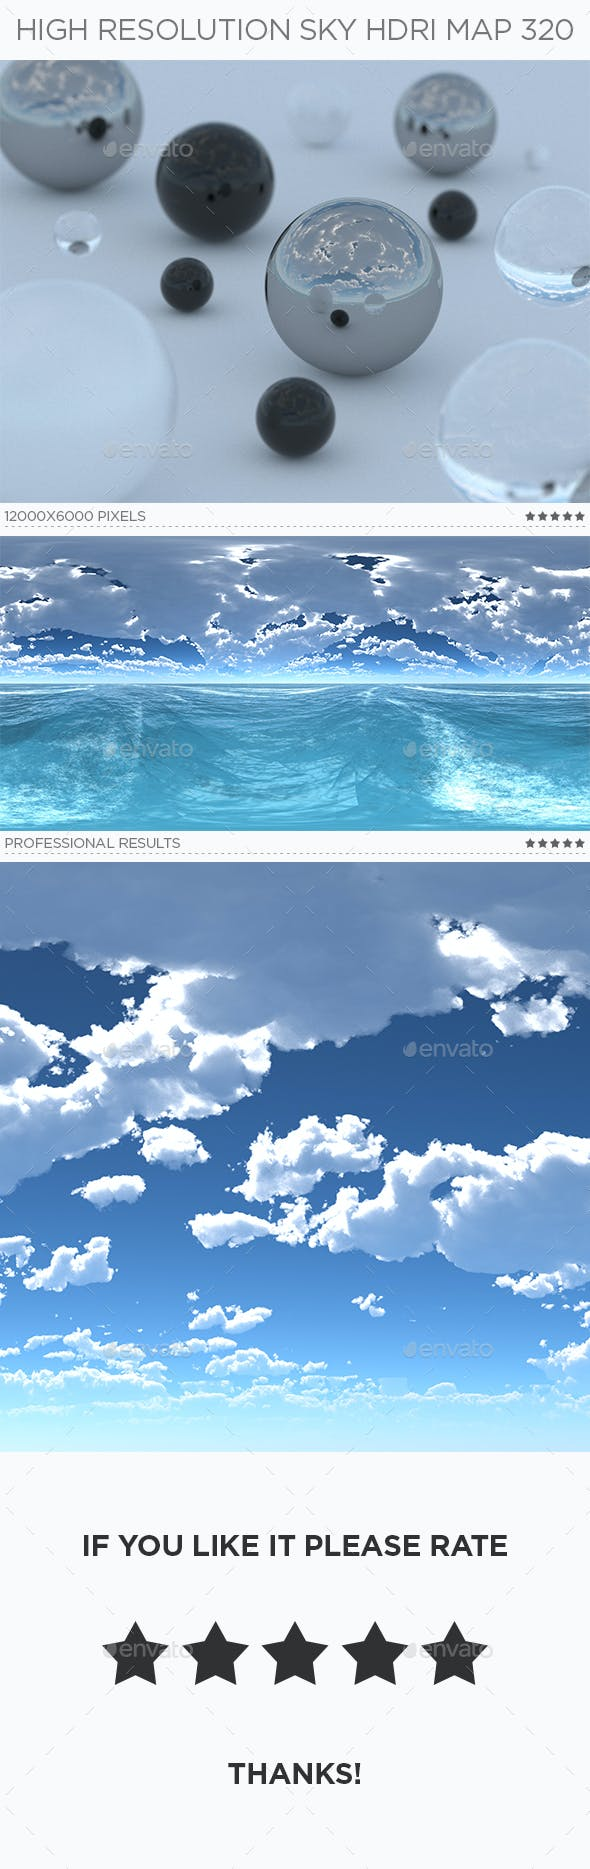 High Resolution Sky HDRi Map 320 - 3DOcean Item for Sale